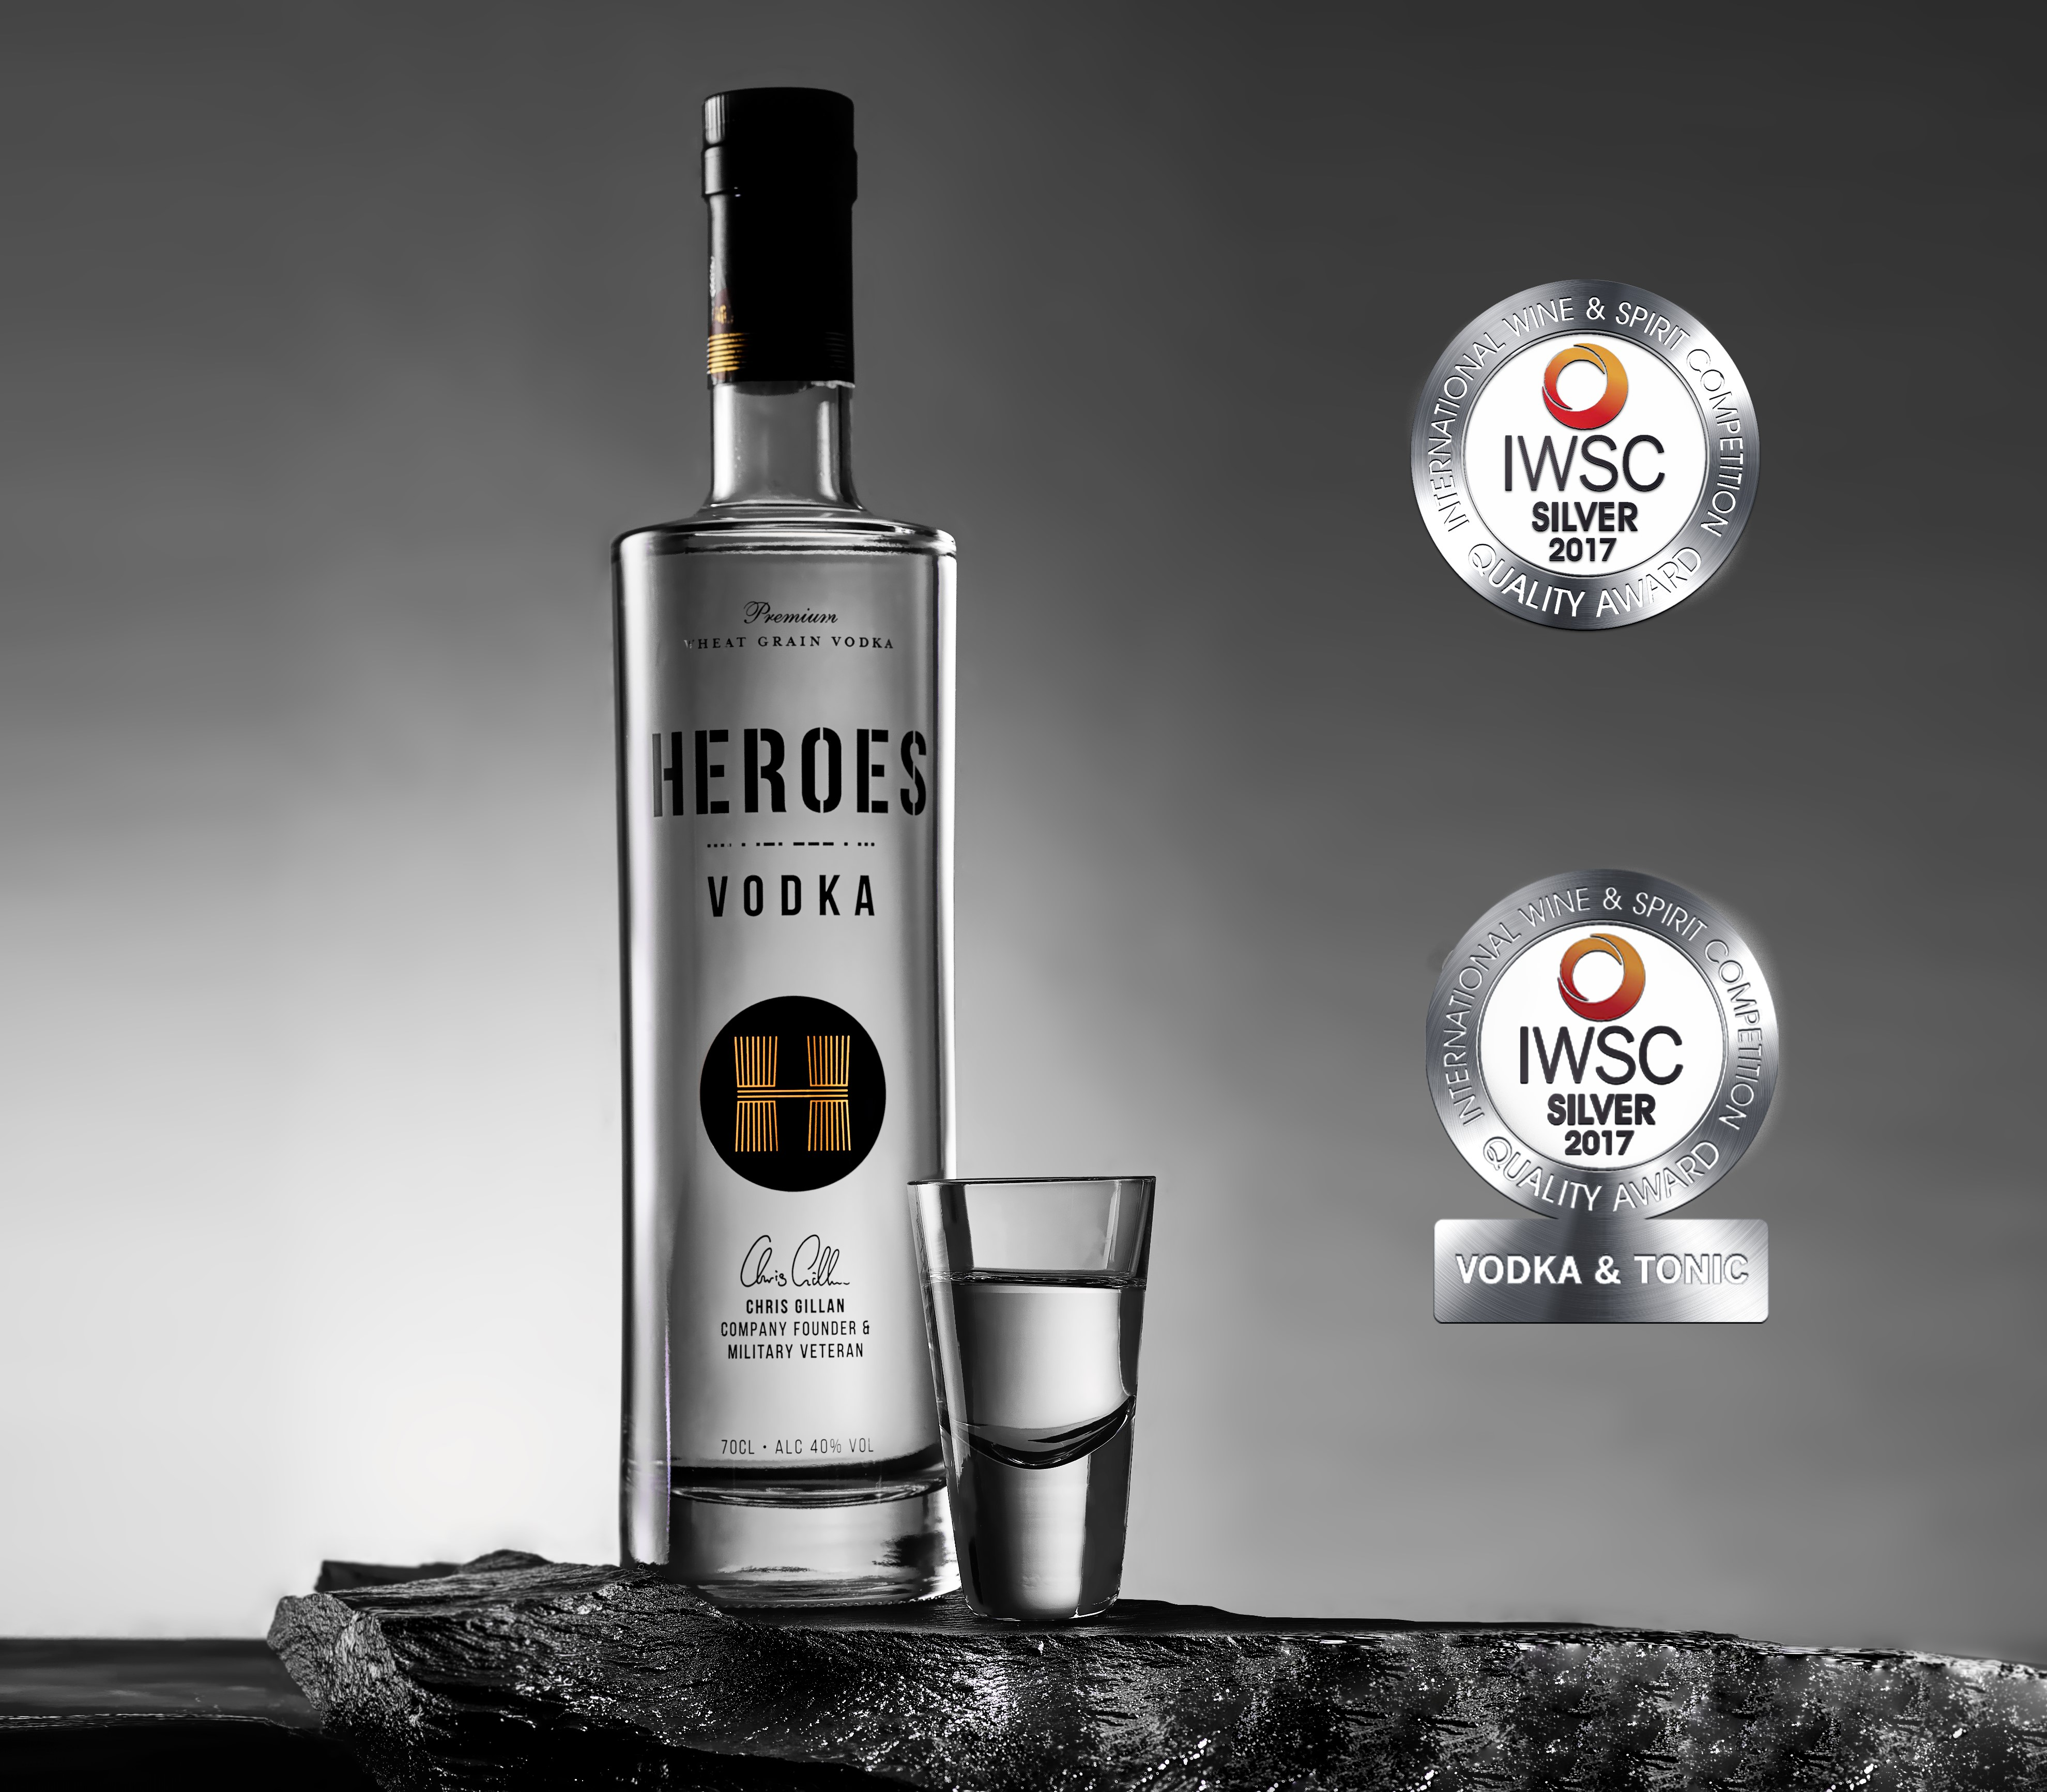 Heroes Vodka - Ideal Father's Day gifts for soldiers